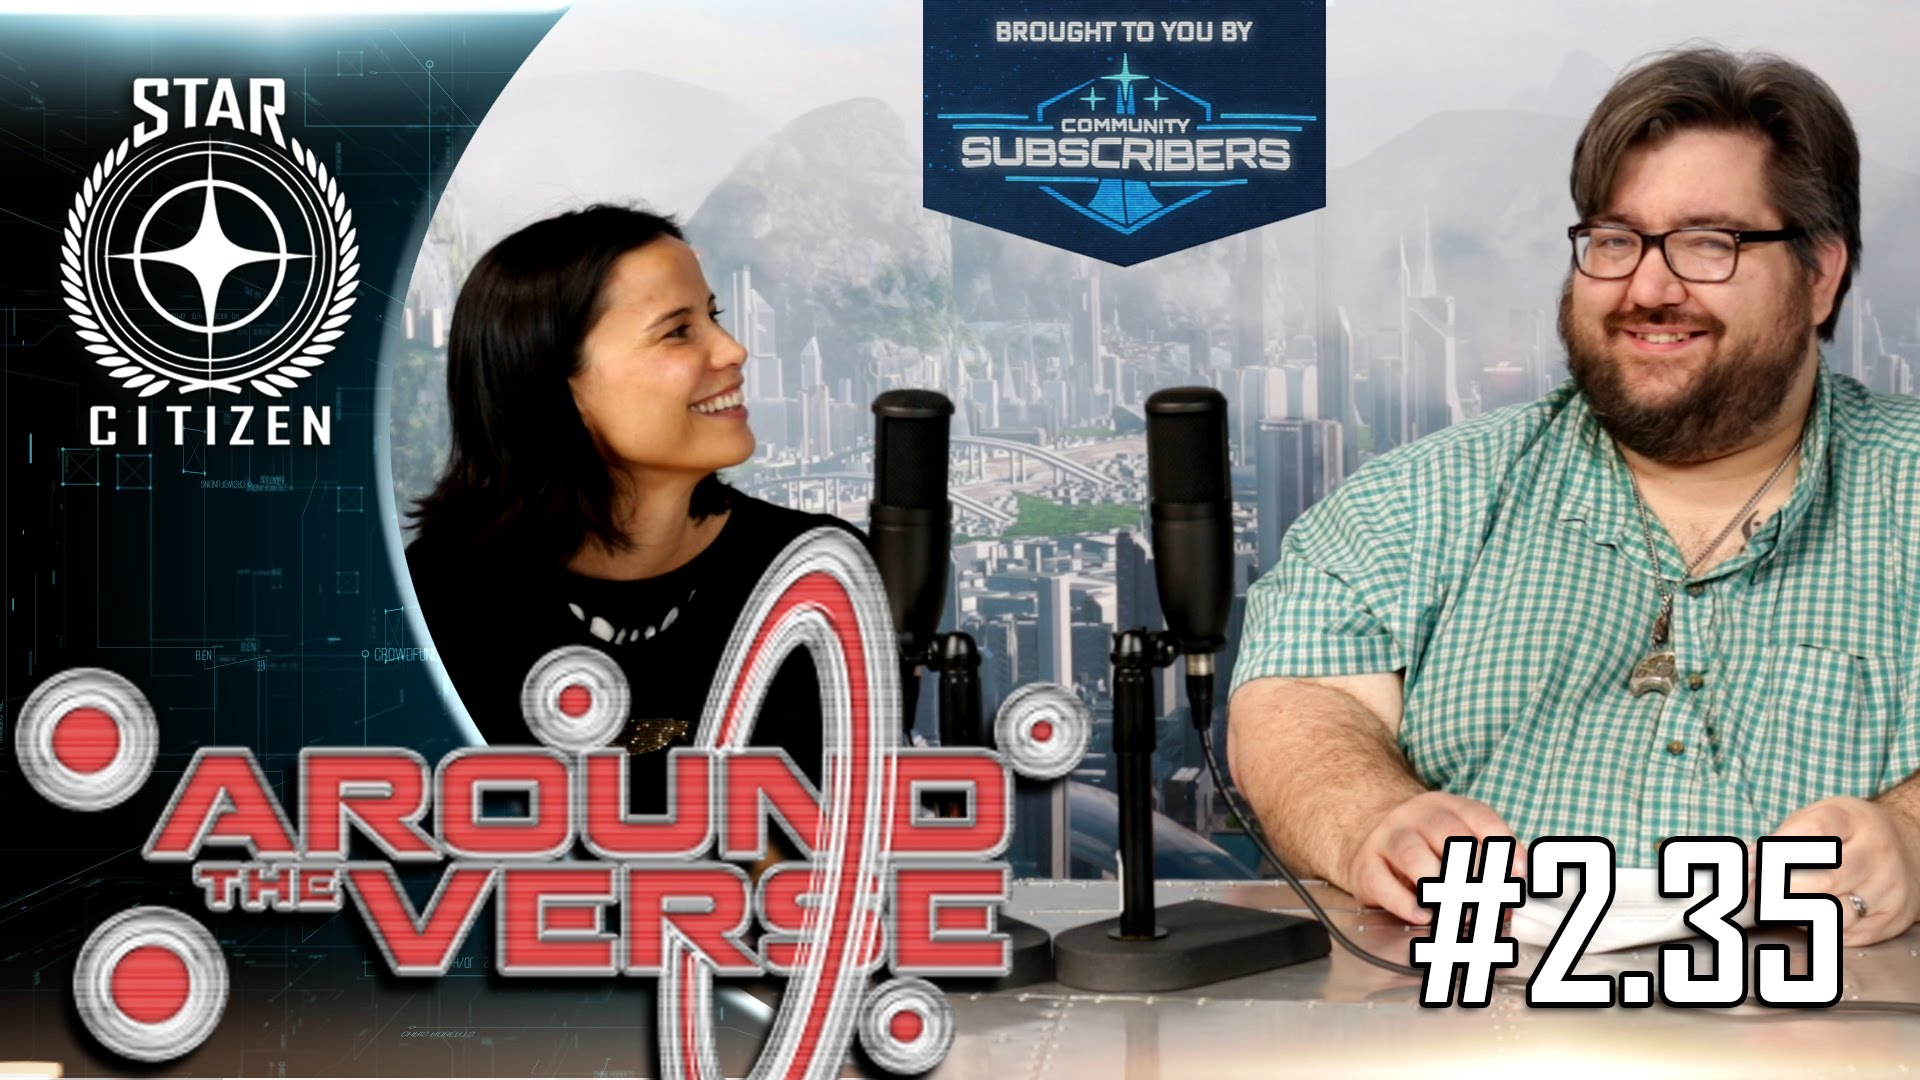 Around the Verse: Episode 2.35